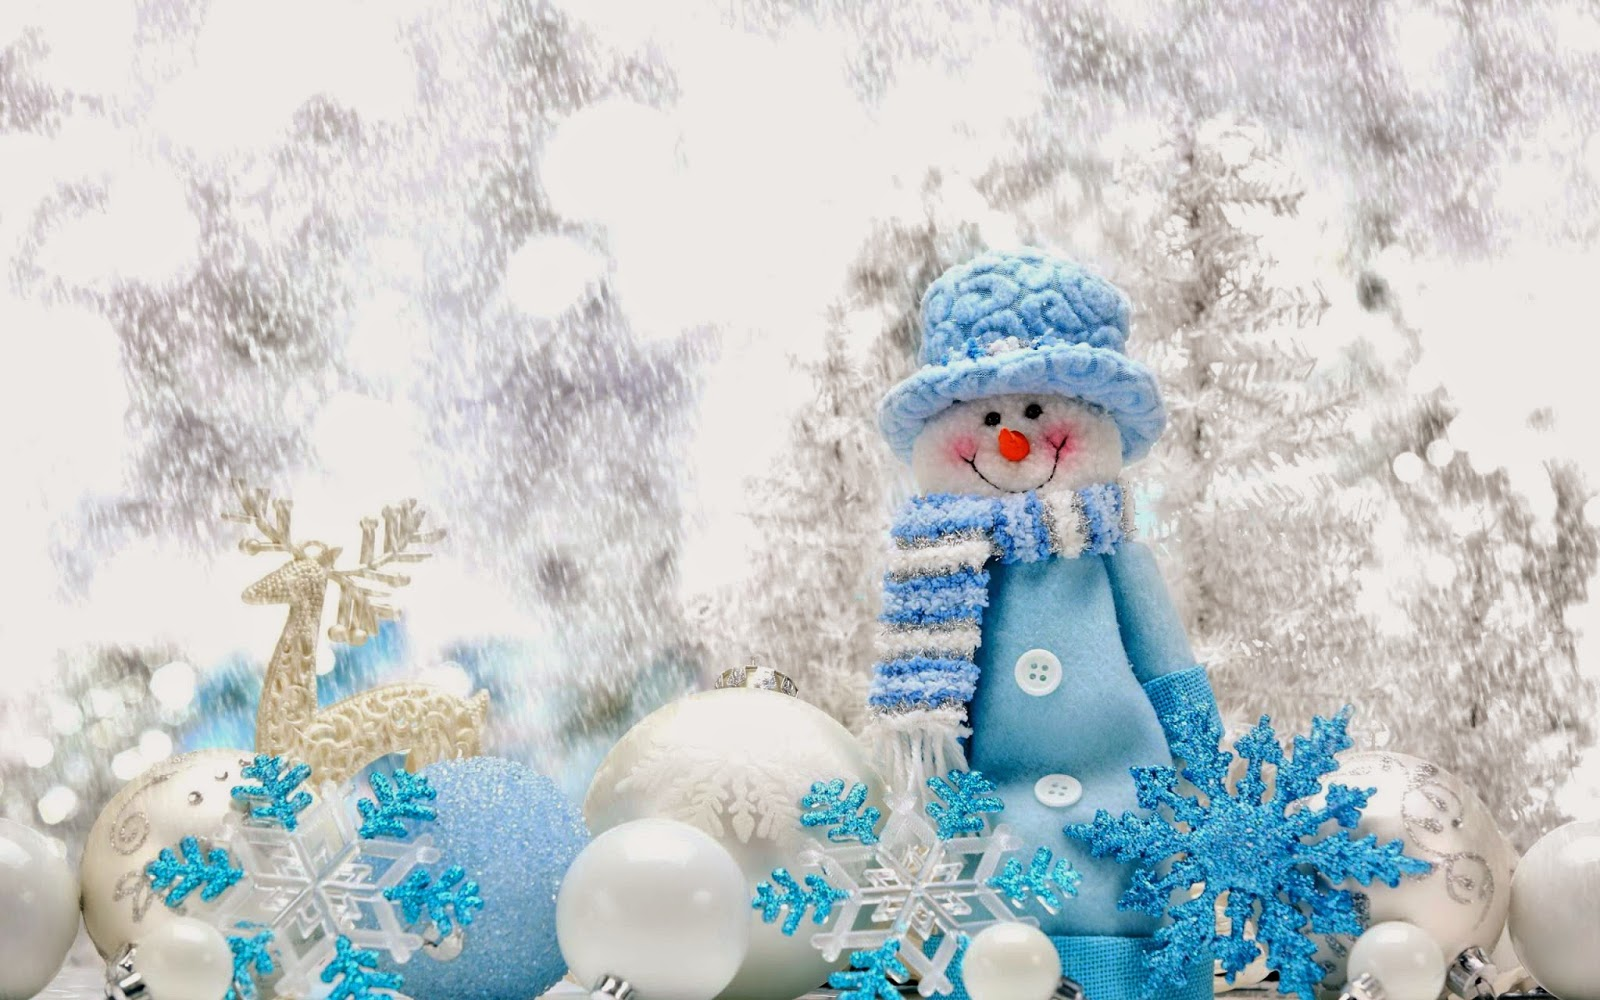 Cute-smile-snowman-blue-dress-snow-background-HD-wallpaper-for-desktop-pc-Mac.jpg